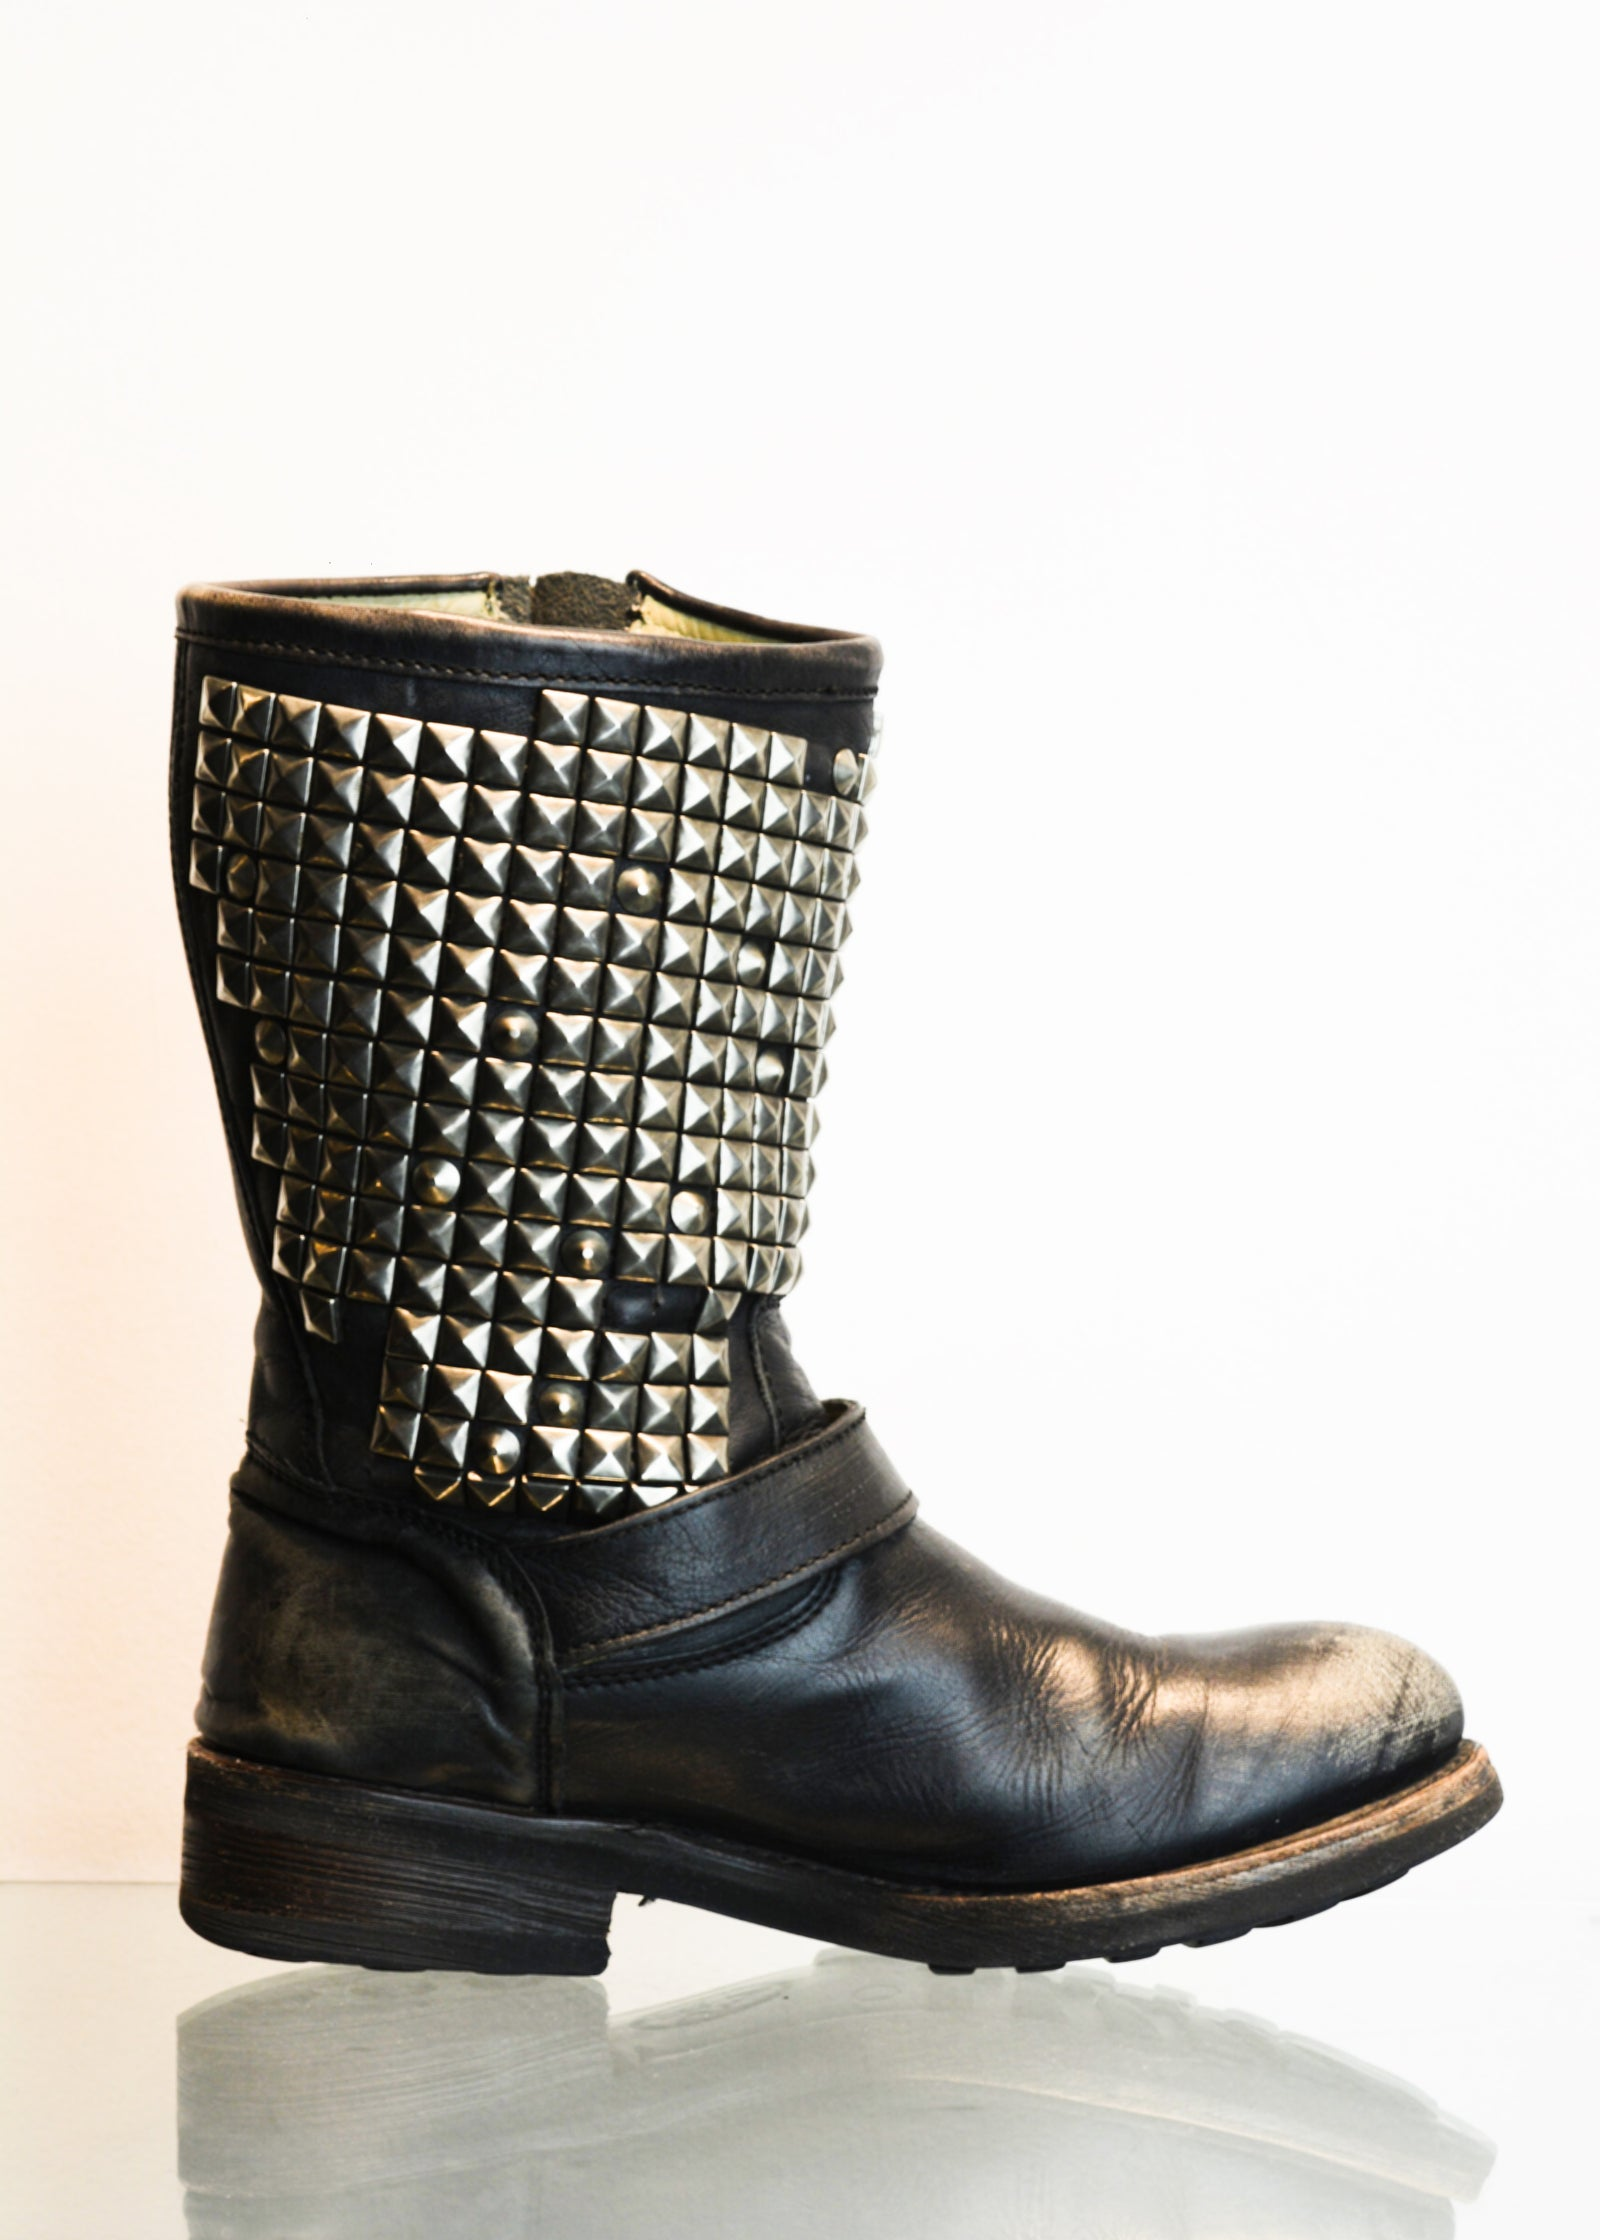 PREWORN | Preloved - 'ASH'  Trash Biker Boot - Size 6 UK